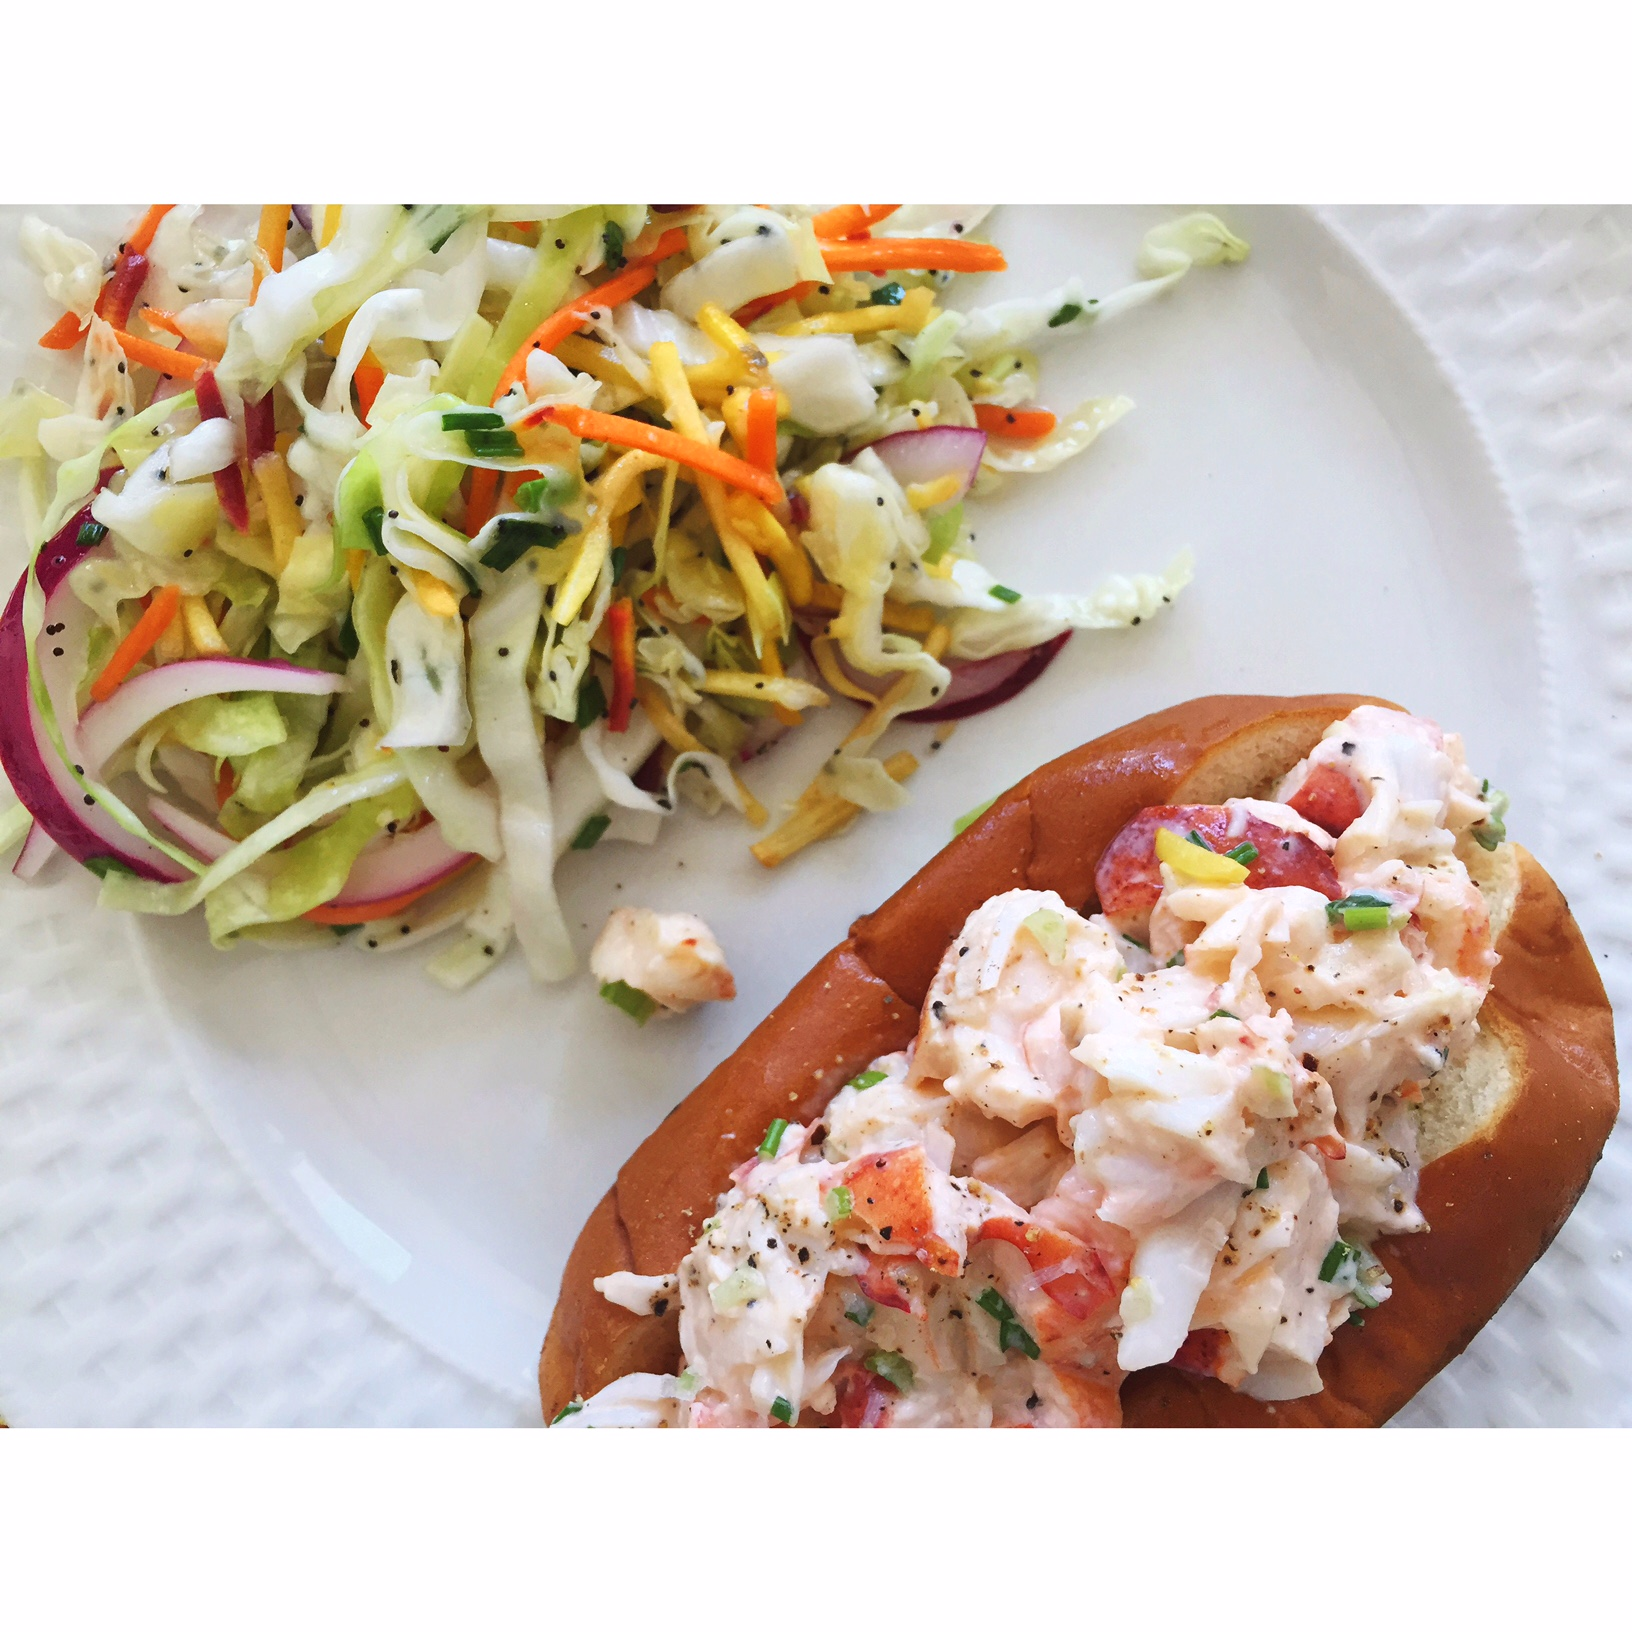 Lobster rolls and cole slaw